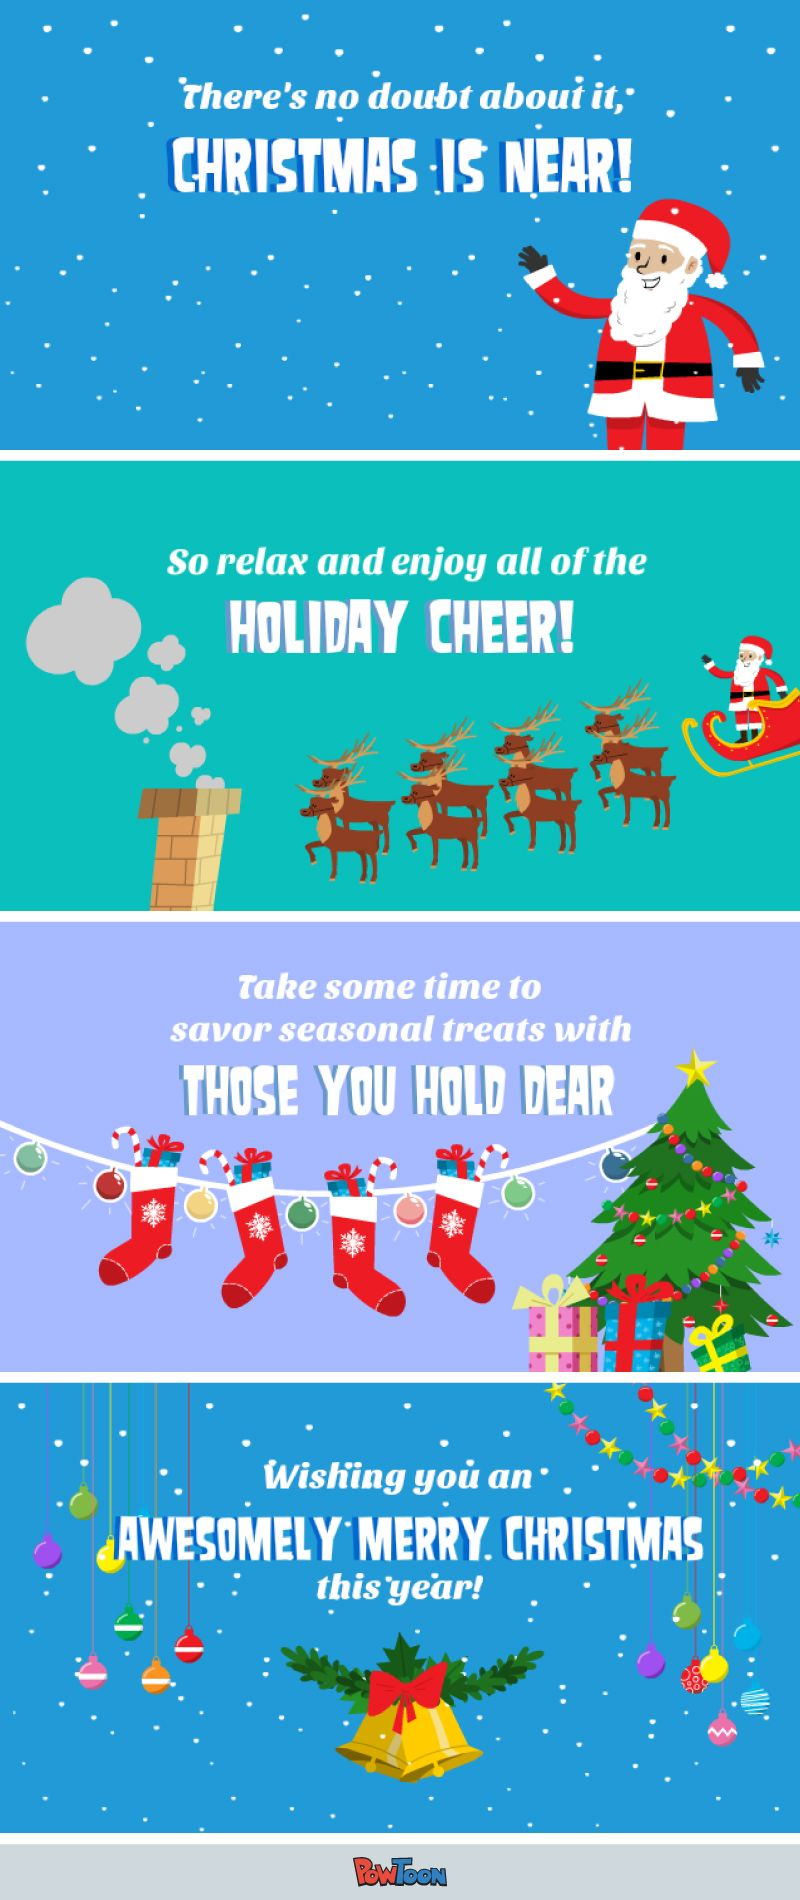 Celebrate The Season Send This Animated Christmas Card To Friends